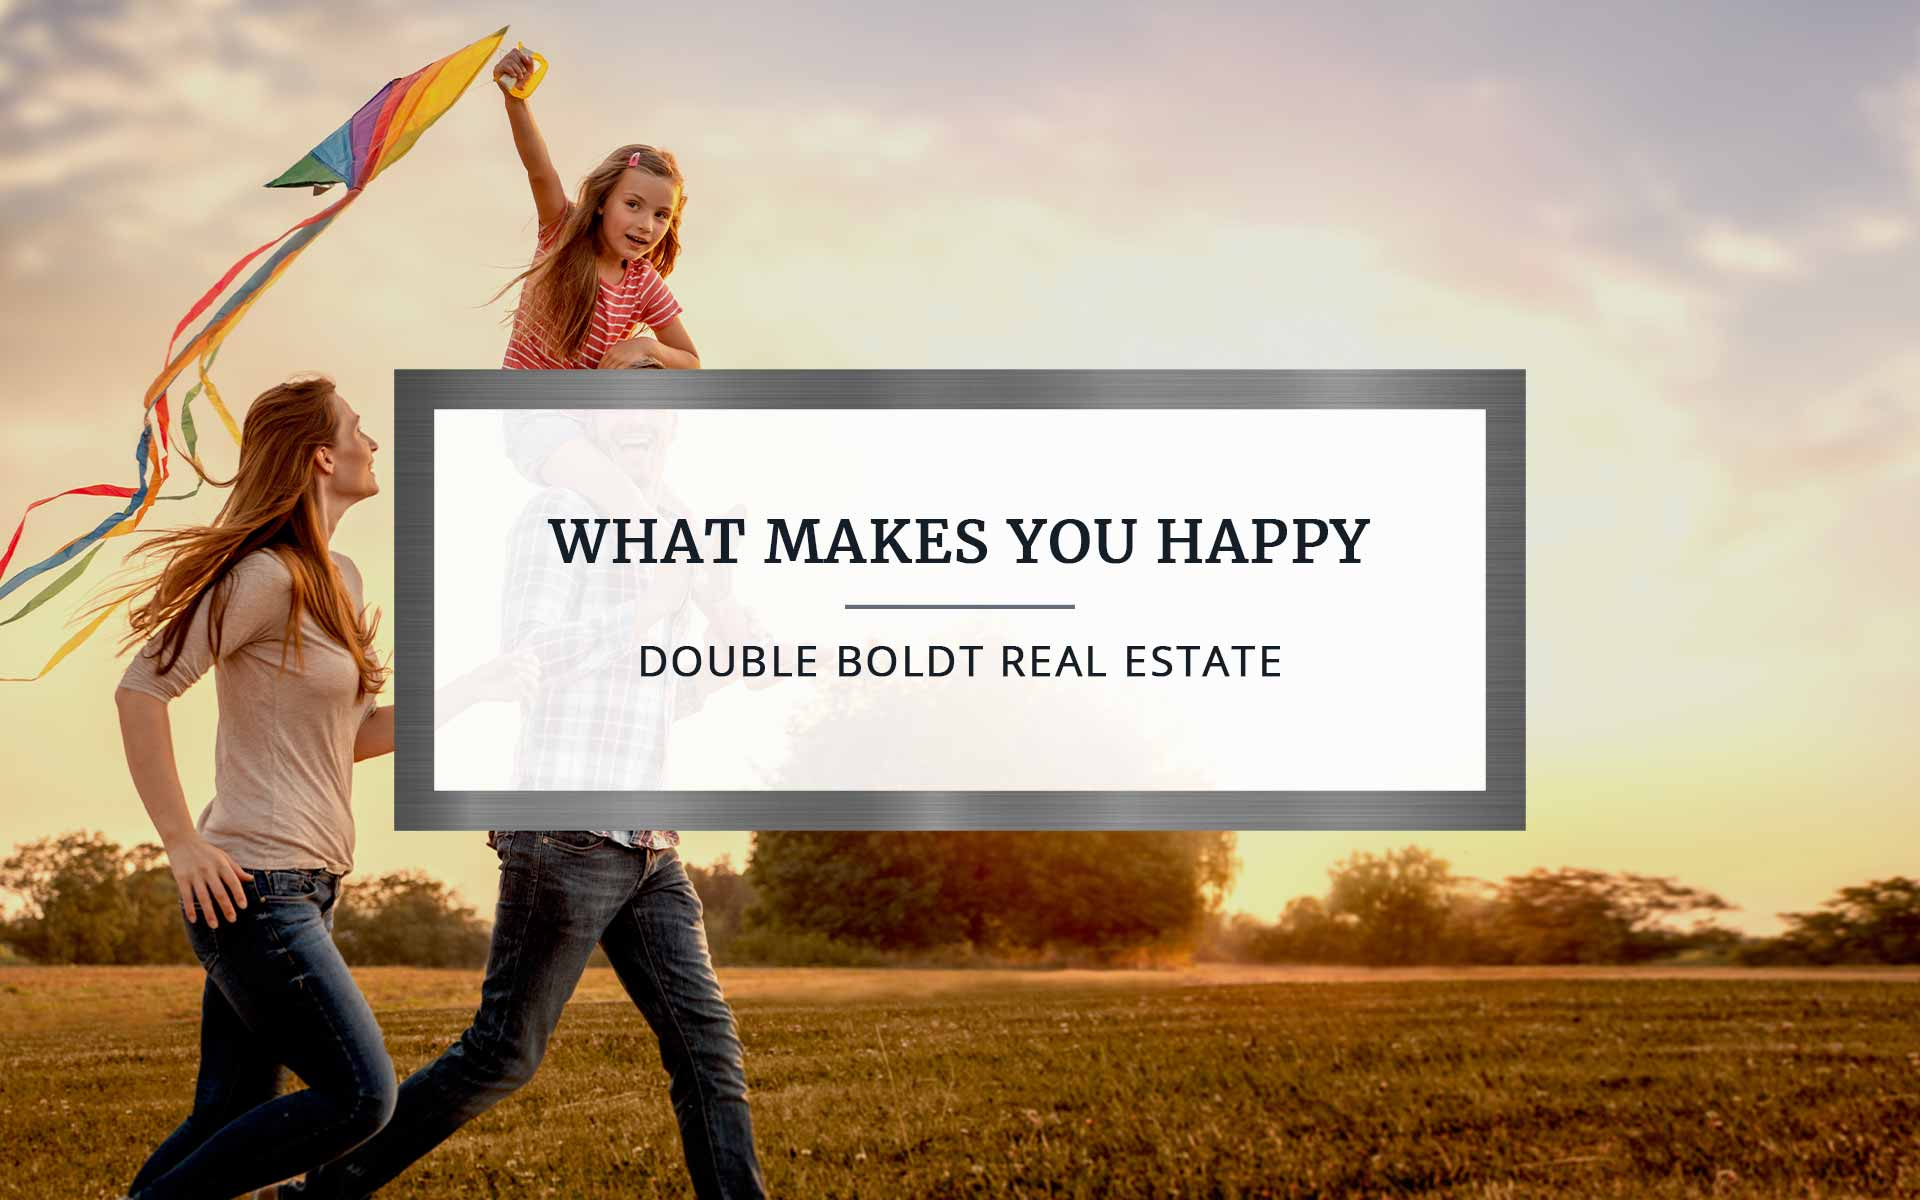 What Makes You Happy | Double Boldt Real Estate